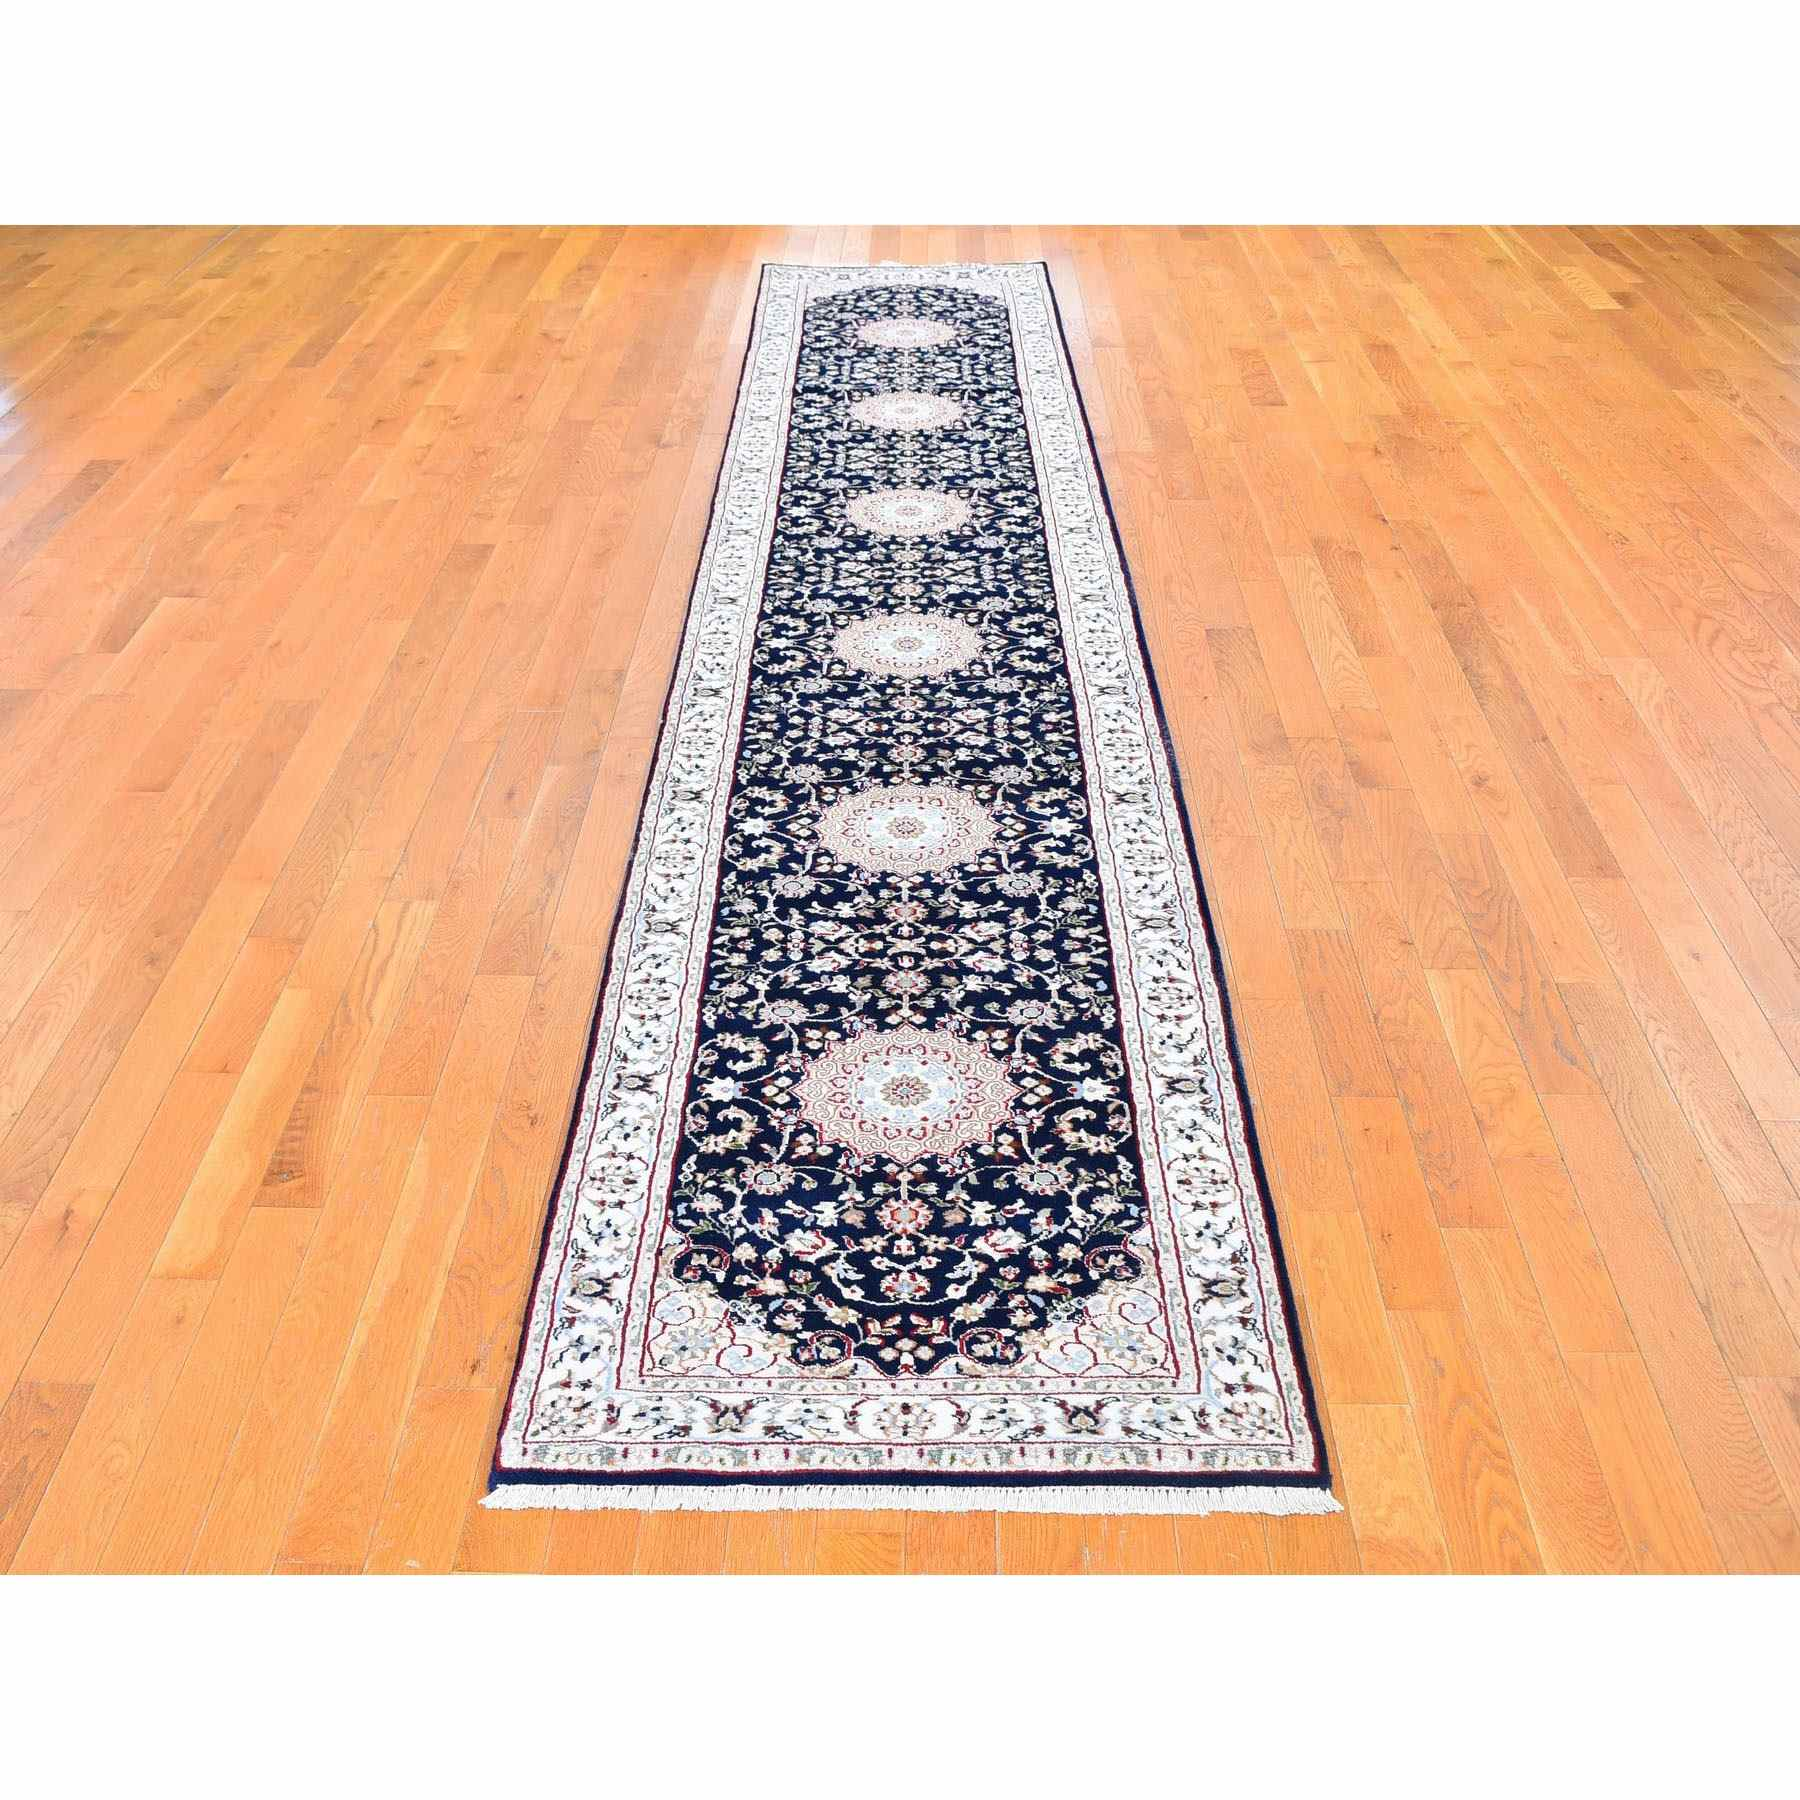 Fine-Oriental-Hand-Knotted-Rug-298150